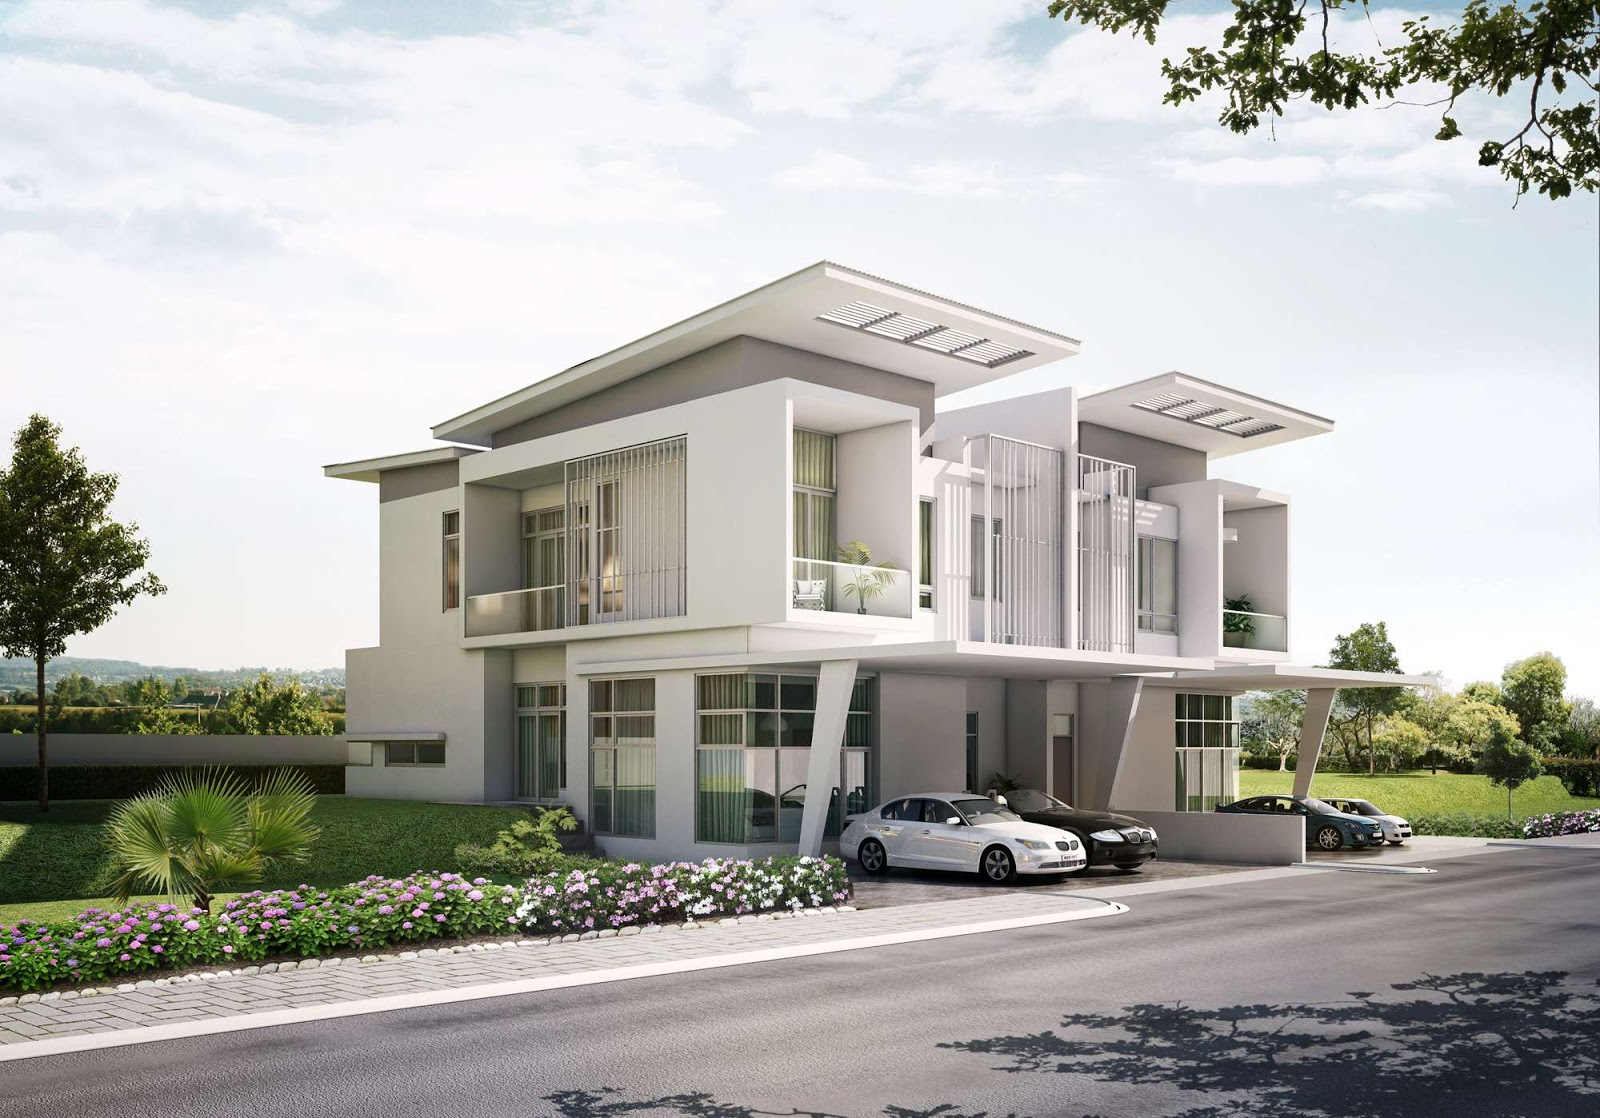 New home designs latest singapore modern homes exterior for Home front design photo